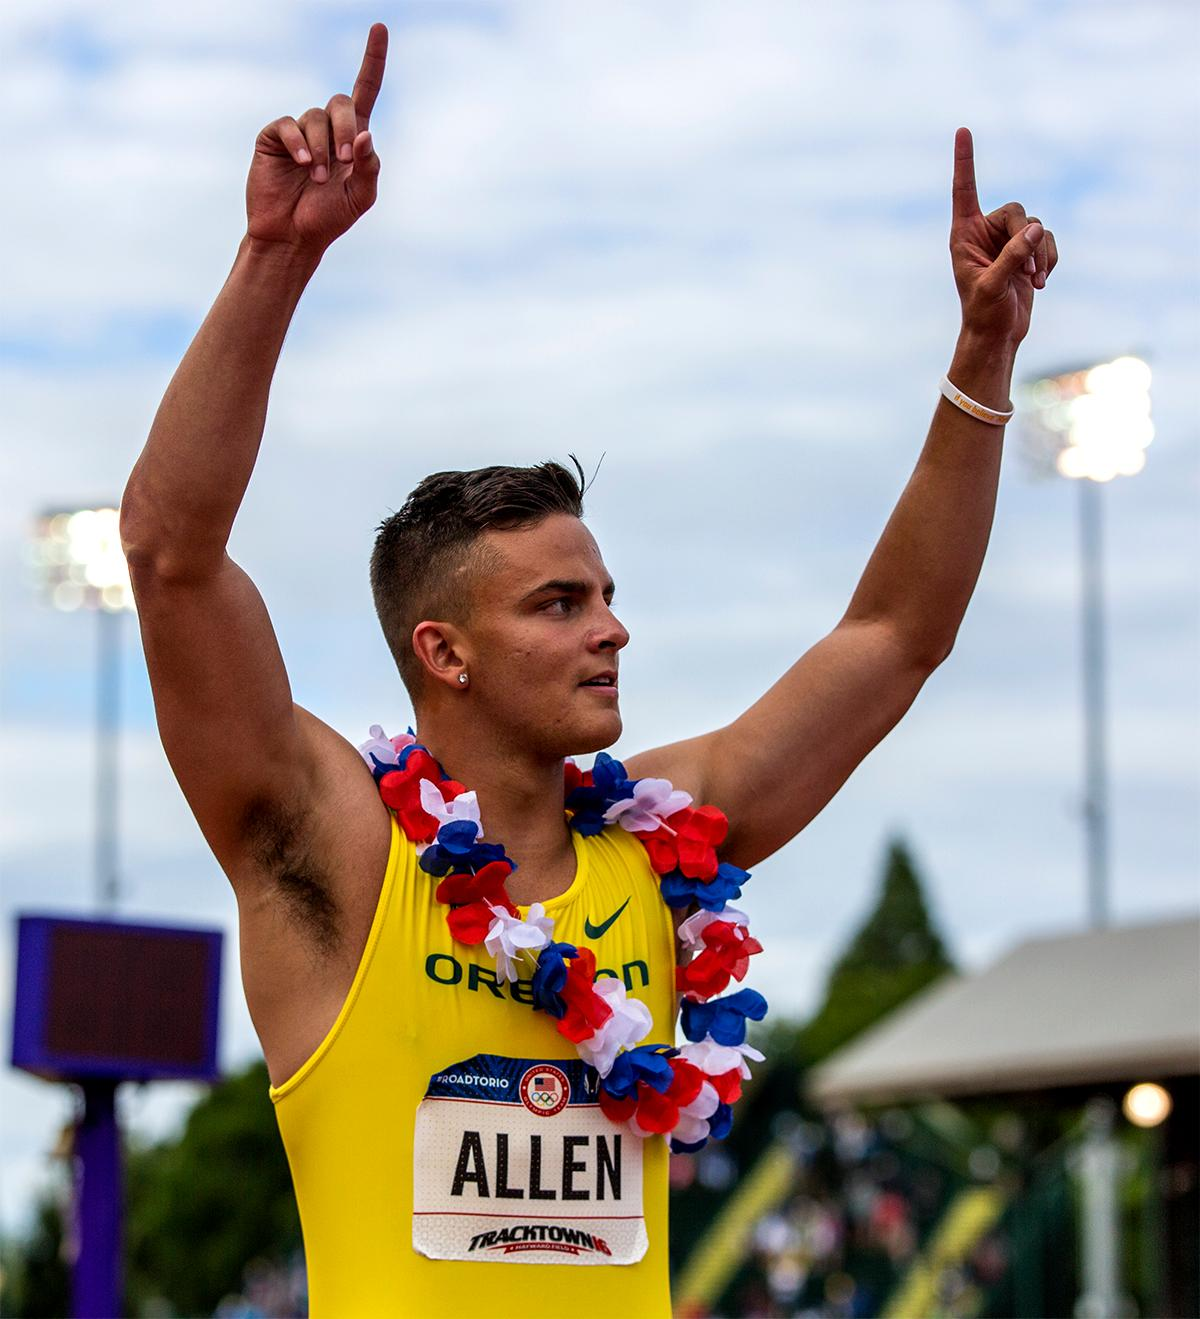 OregonÃ?s Devon Allen stormed to a victory in the 110 meter hurdles, taking the win in 13.03. Photo by August Frank, Oregon News Lab